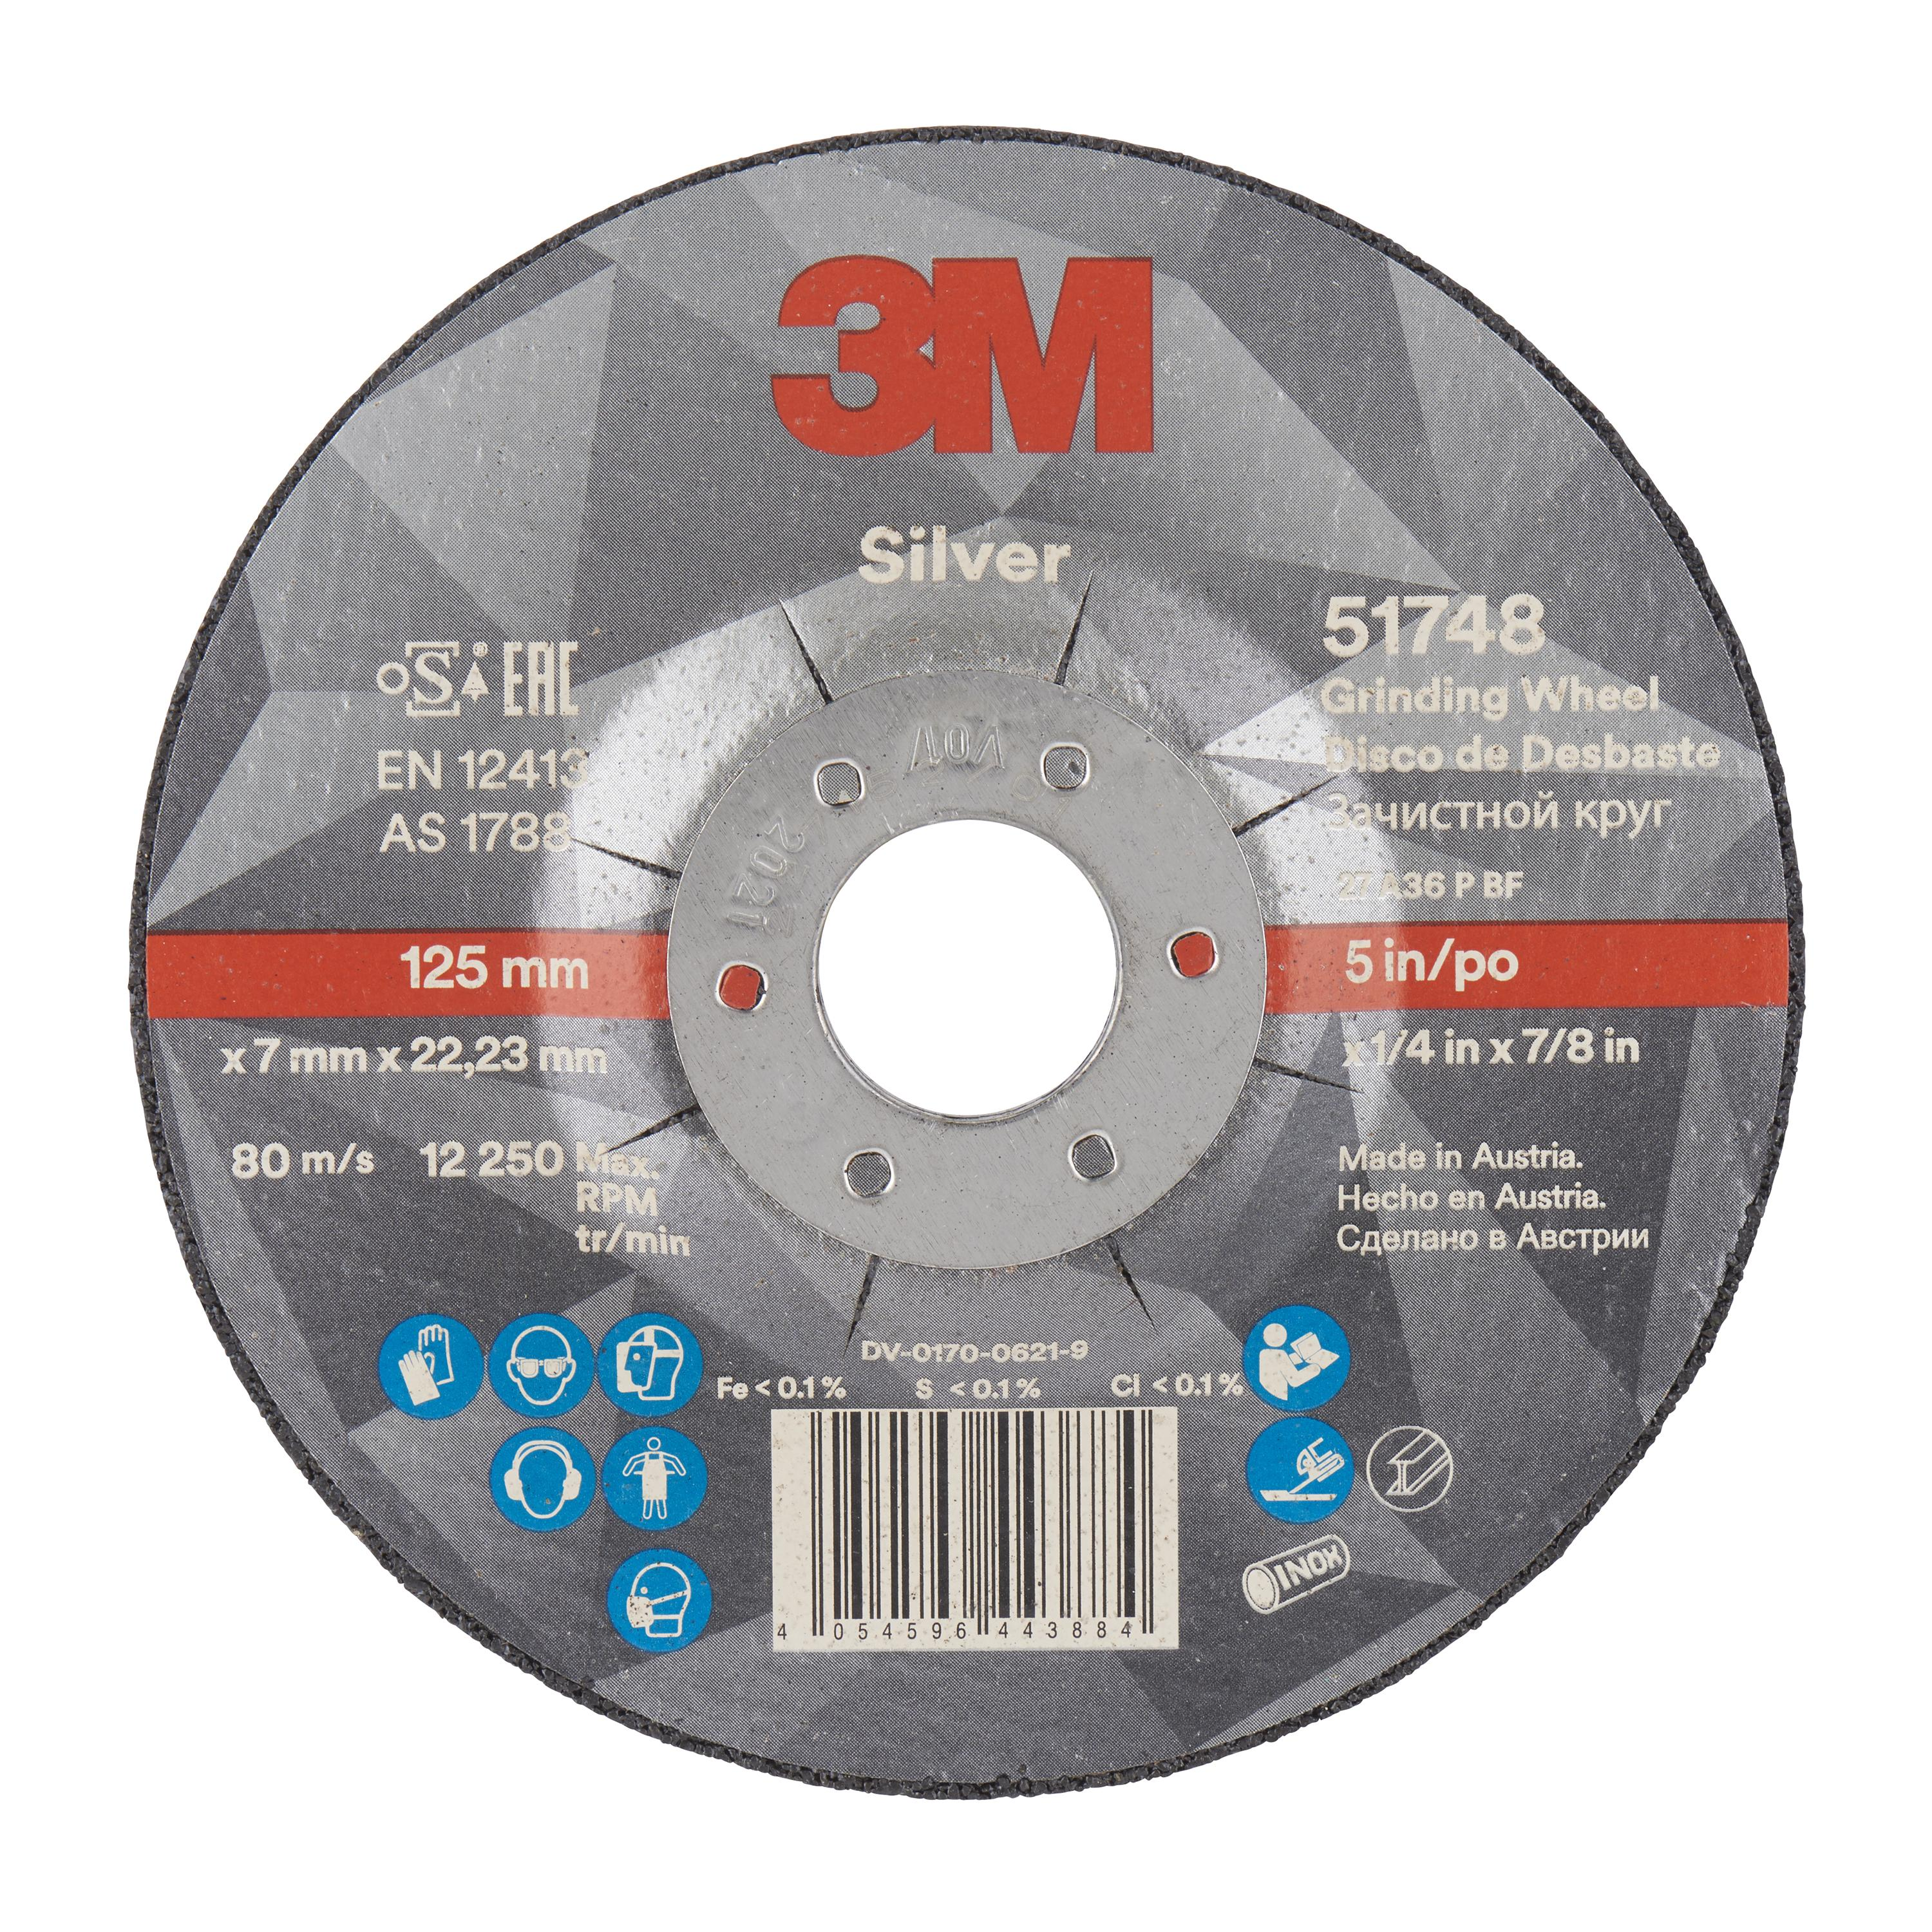 3M Silver Depressed Centre Grinding Wheel 100mmx7x16mm - Abrasive